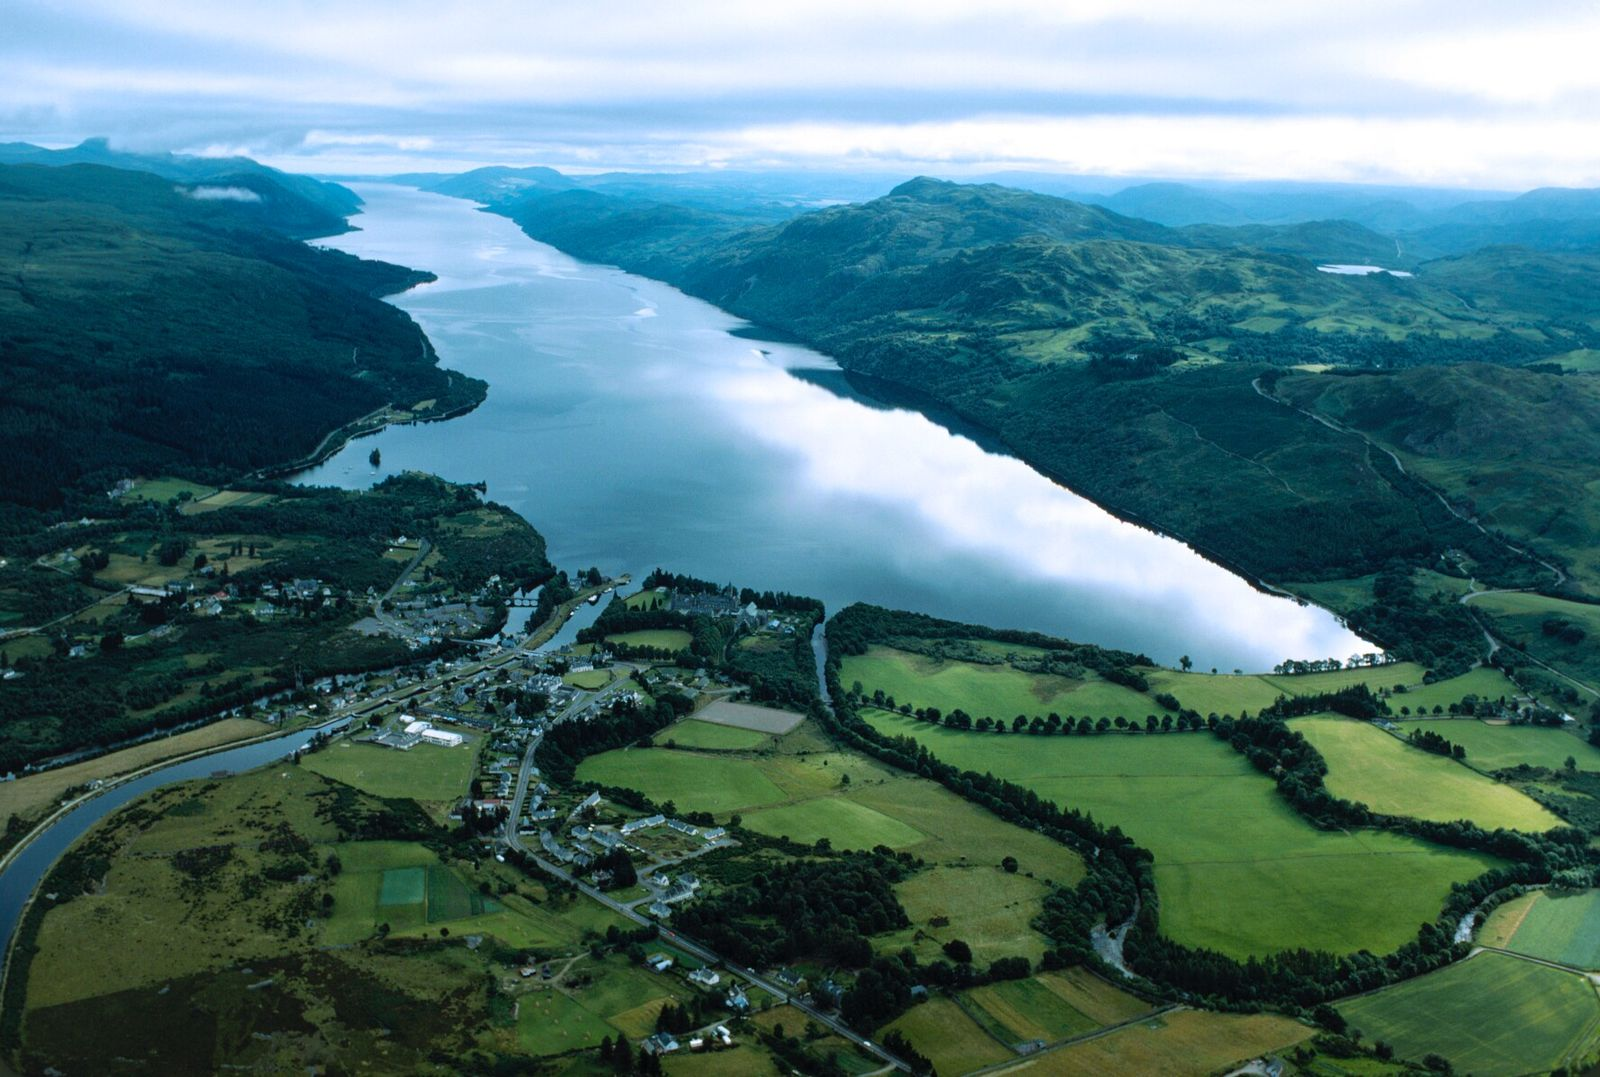 The size of Loch Ness – nearly 40km long, and in places over 200m deep – ...